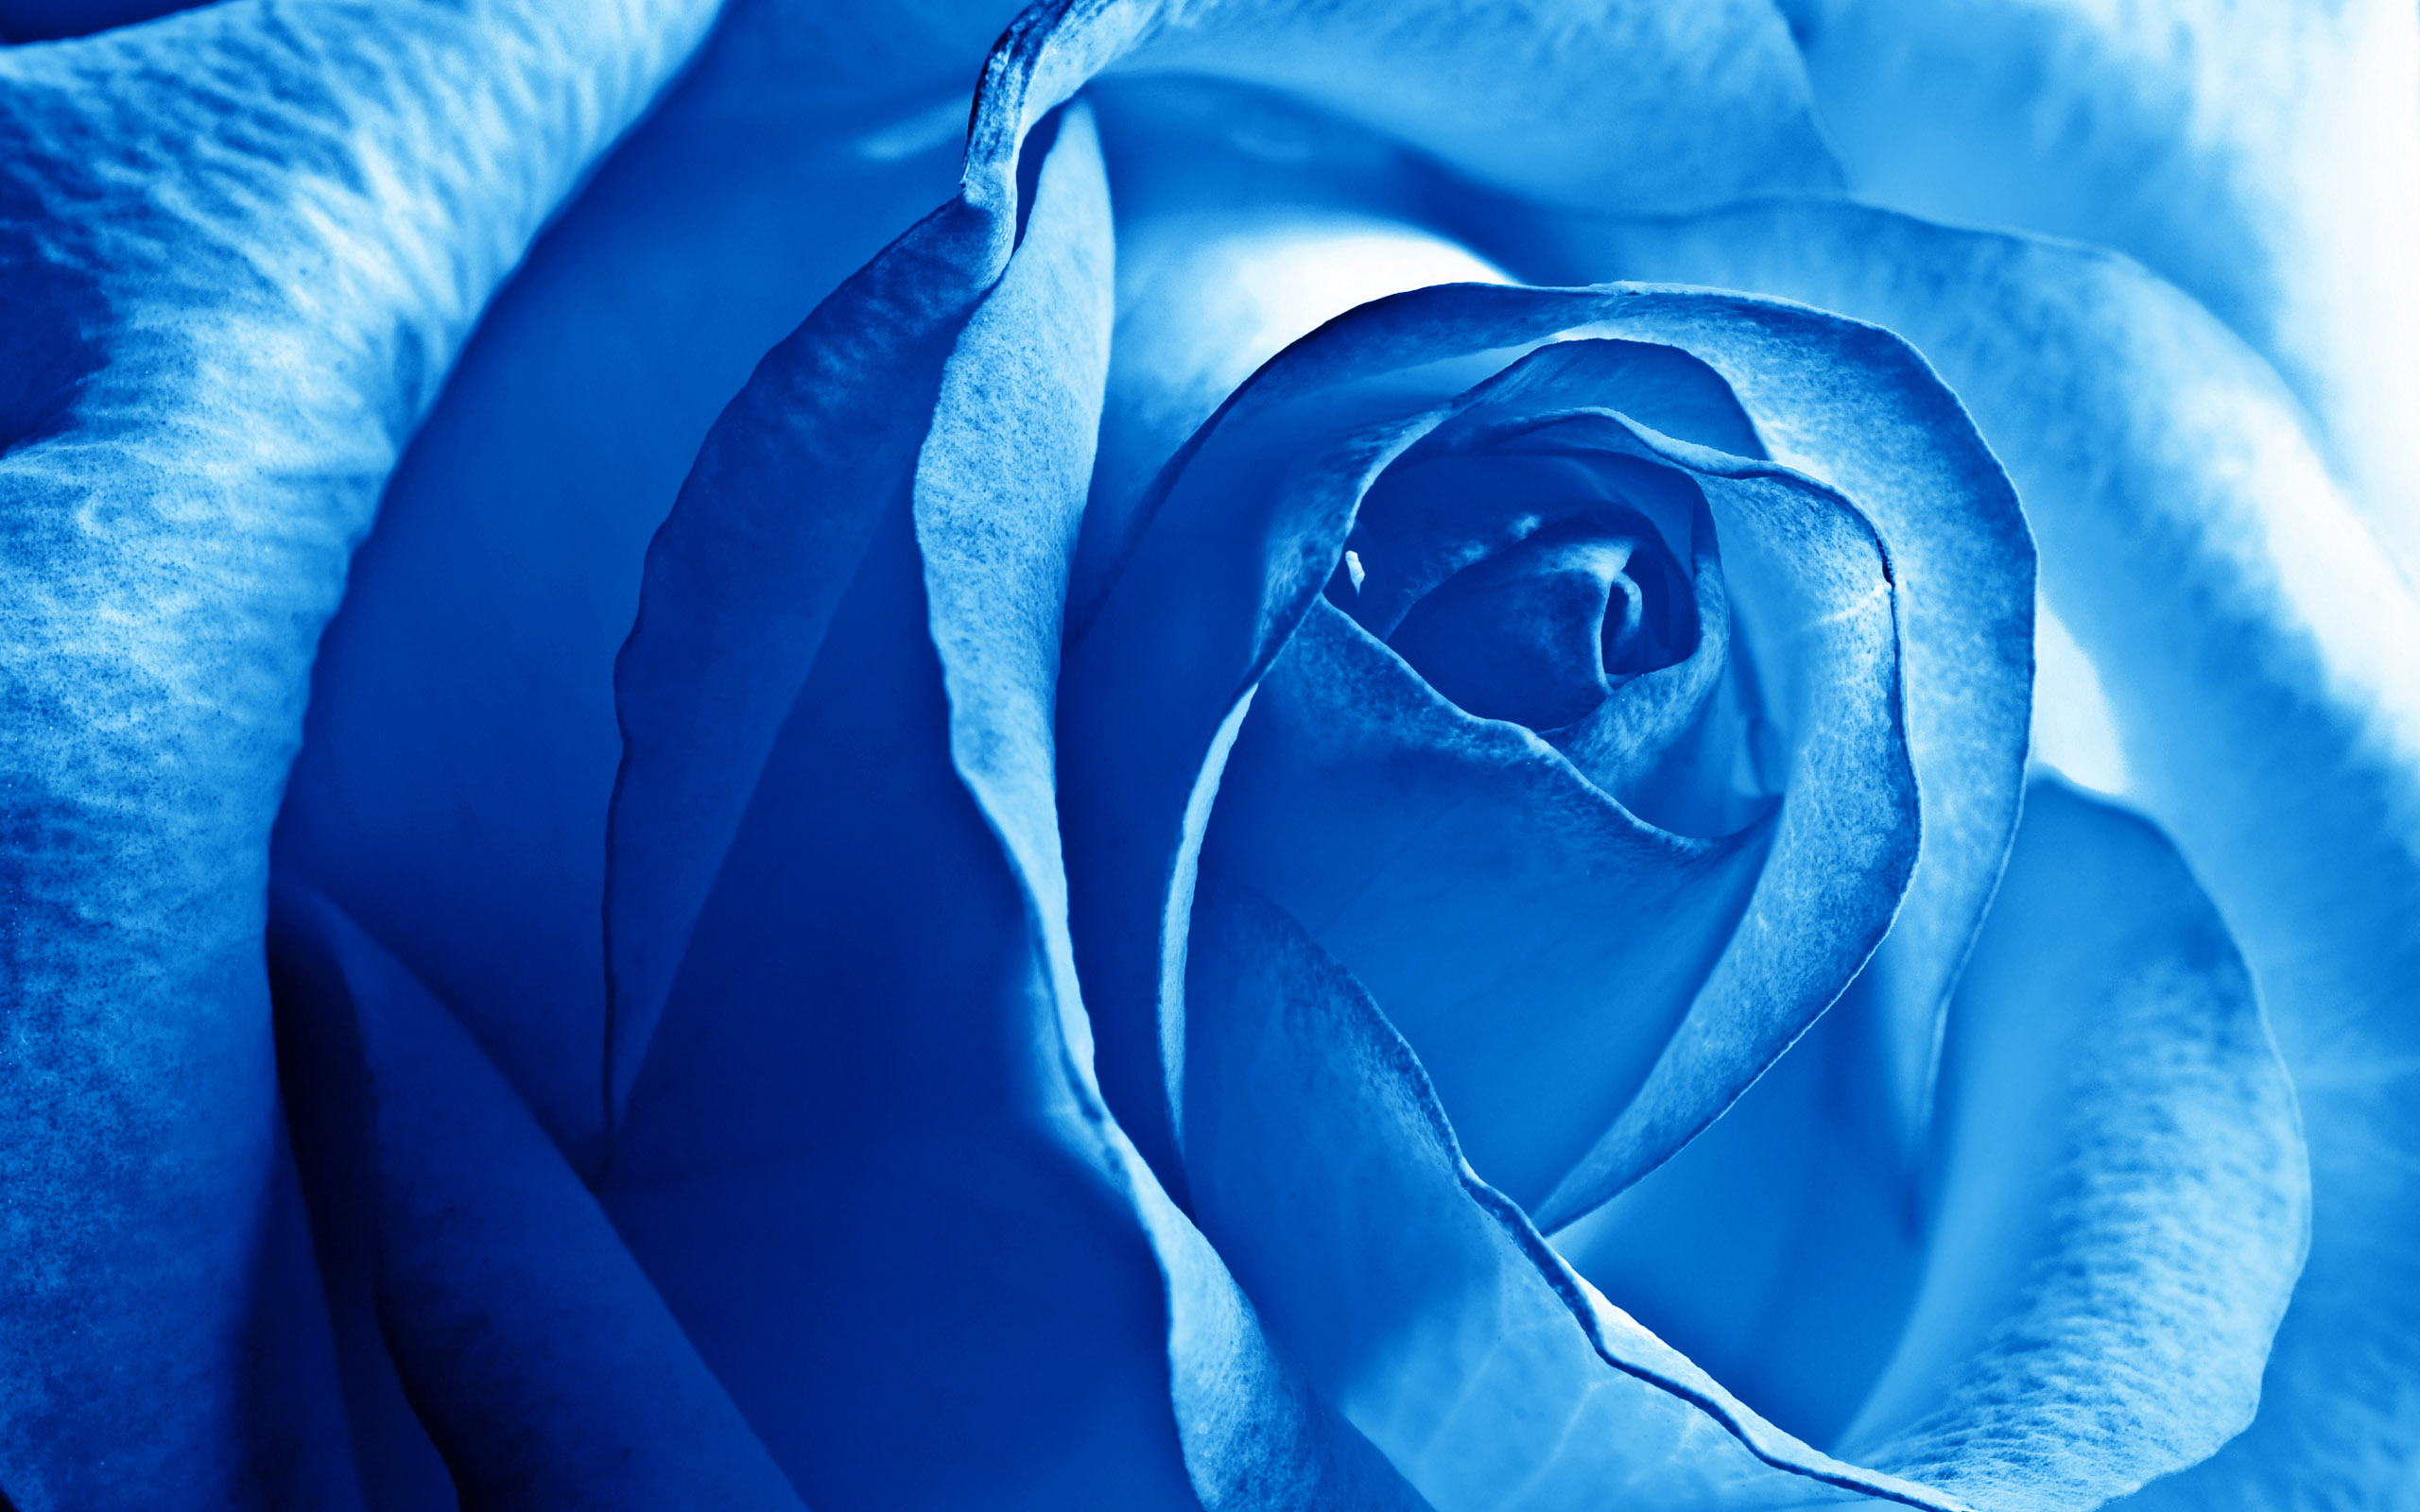 Blue Rose Wallpapers | HD Wallpapers Wallpaper